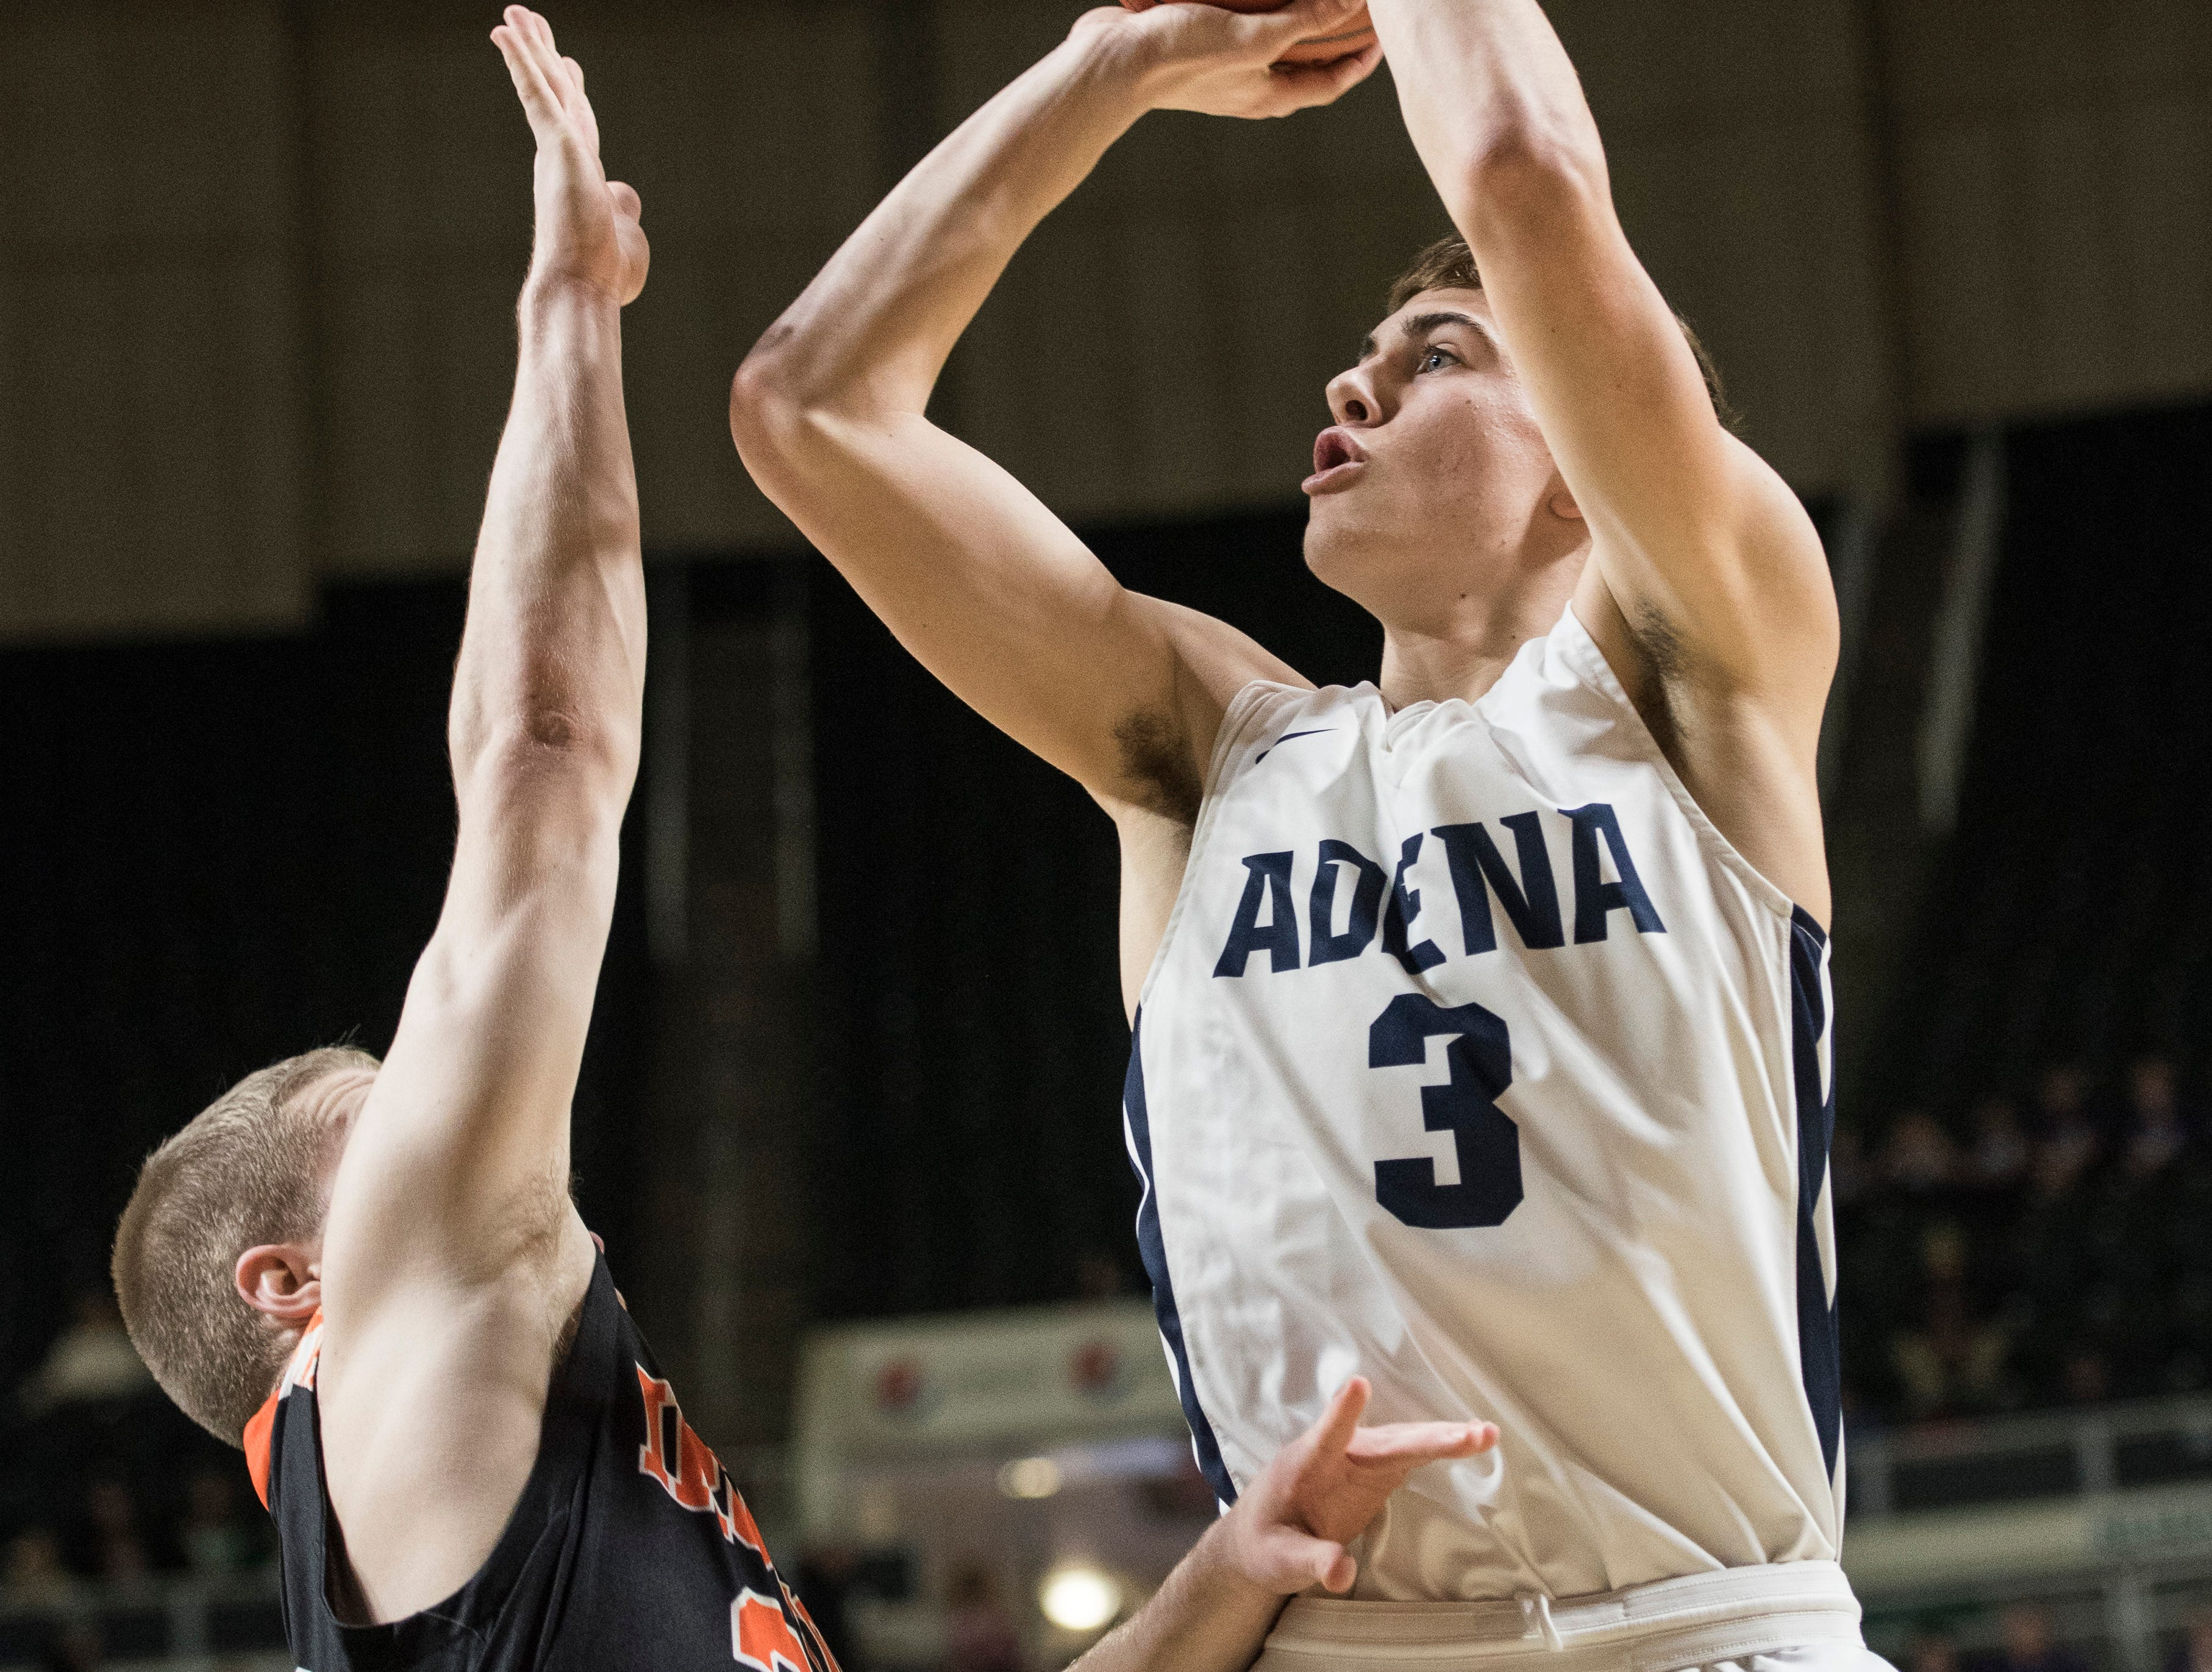 Adena senior Zach Fout scores against Ironton Saturday night in a Division III district semifinal game. Fout's 20-point game helped Adena clench the win over Ironton to send them to the district finals.